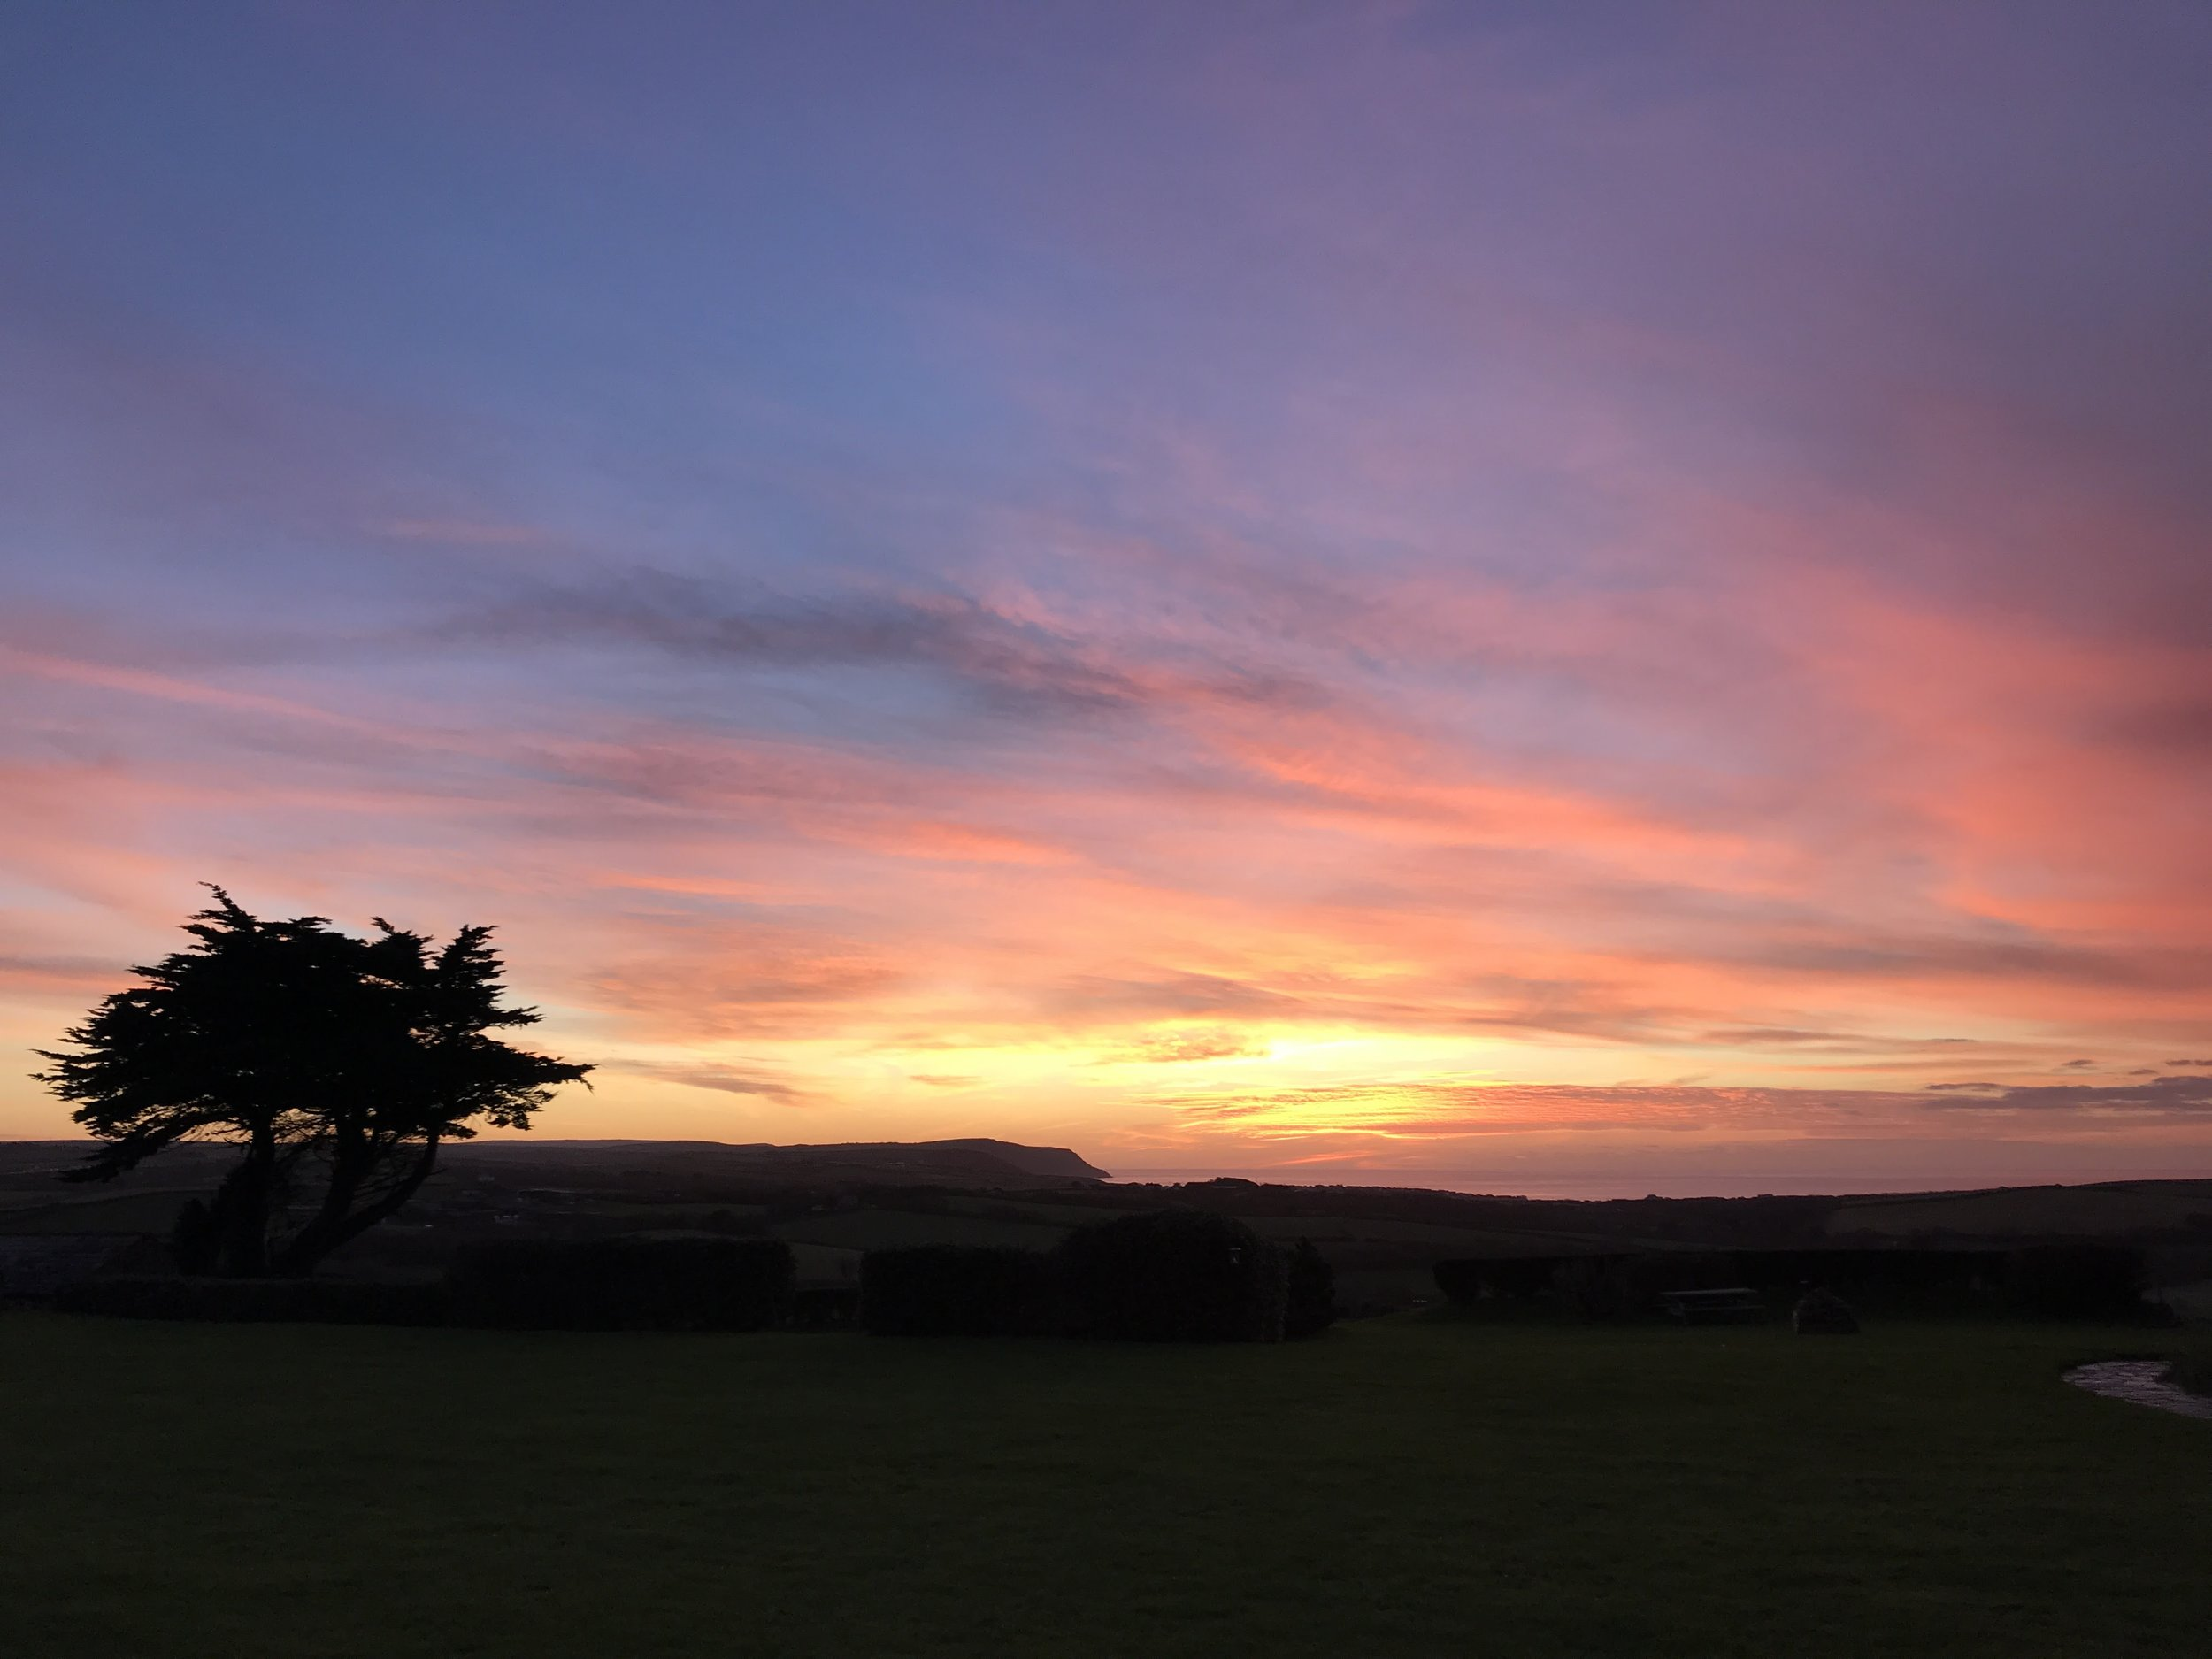 Sunset over Wooldown Holiday Cottages